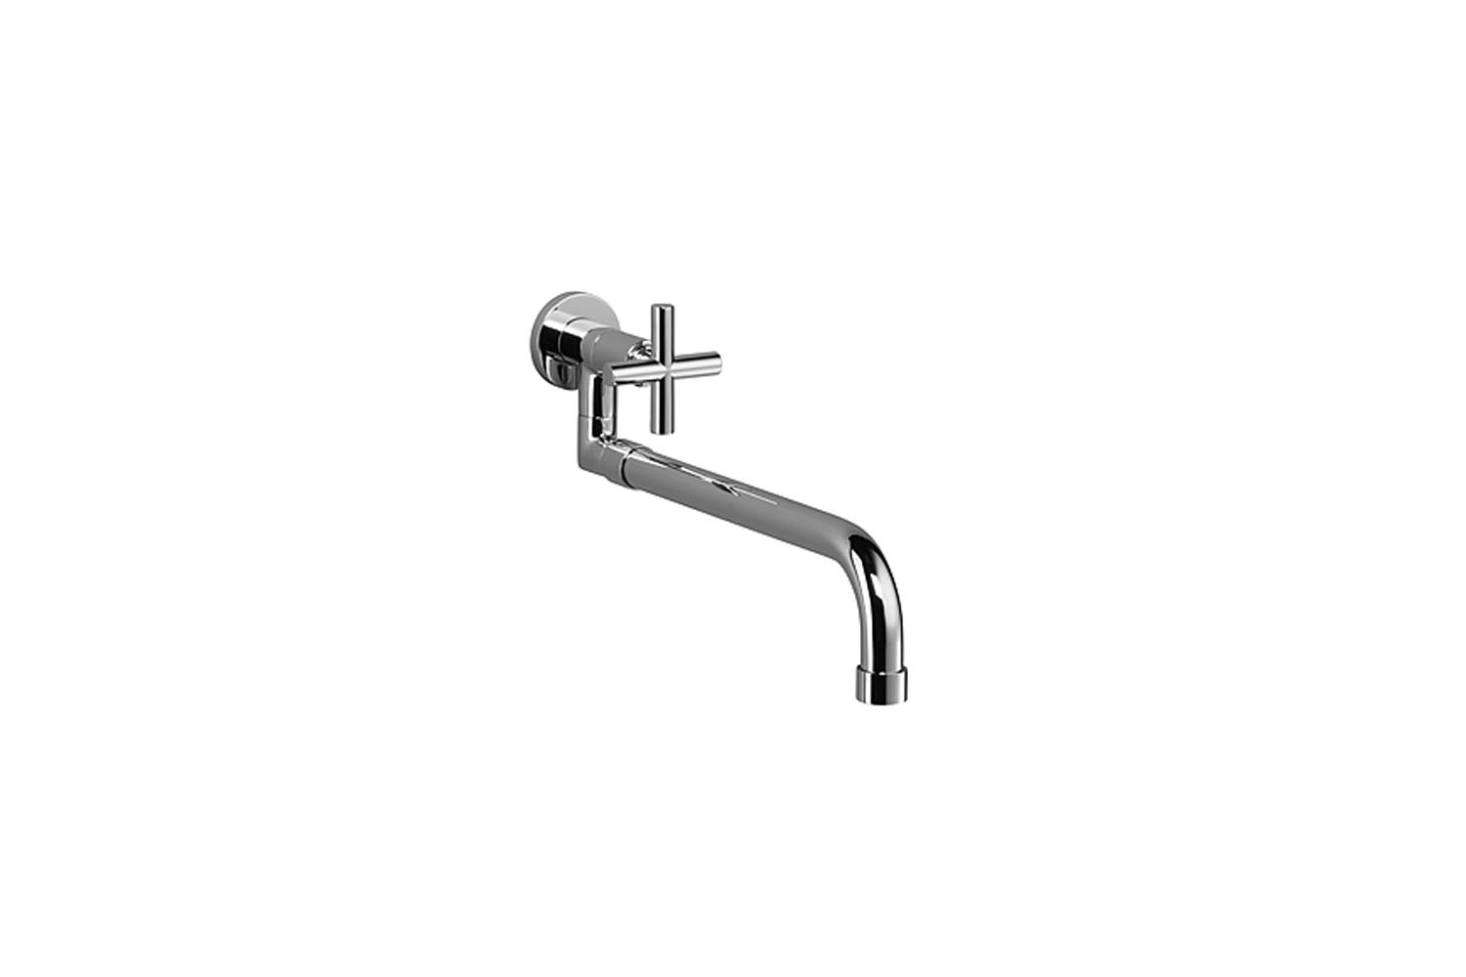 The Dornbract Tara Wall-Mounted Pot Filler with Pull-Out Spout is a low profile option. It&#8